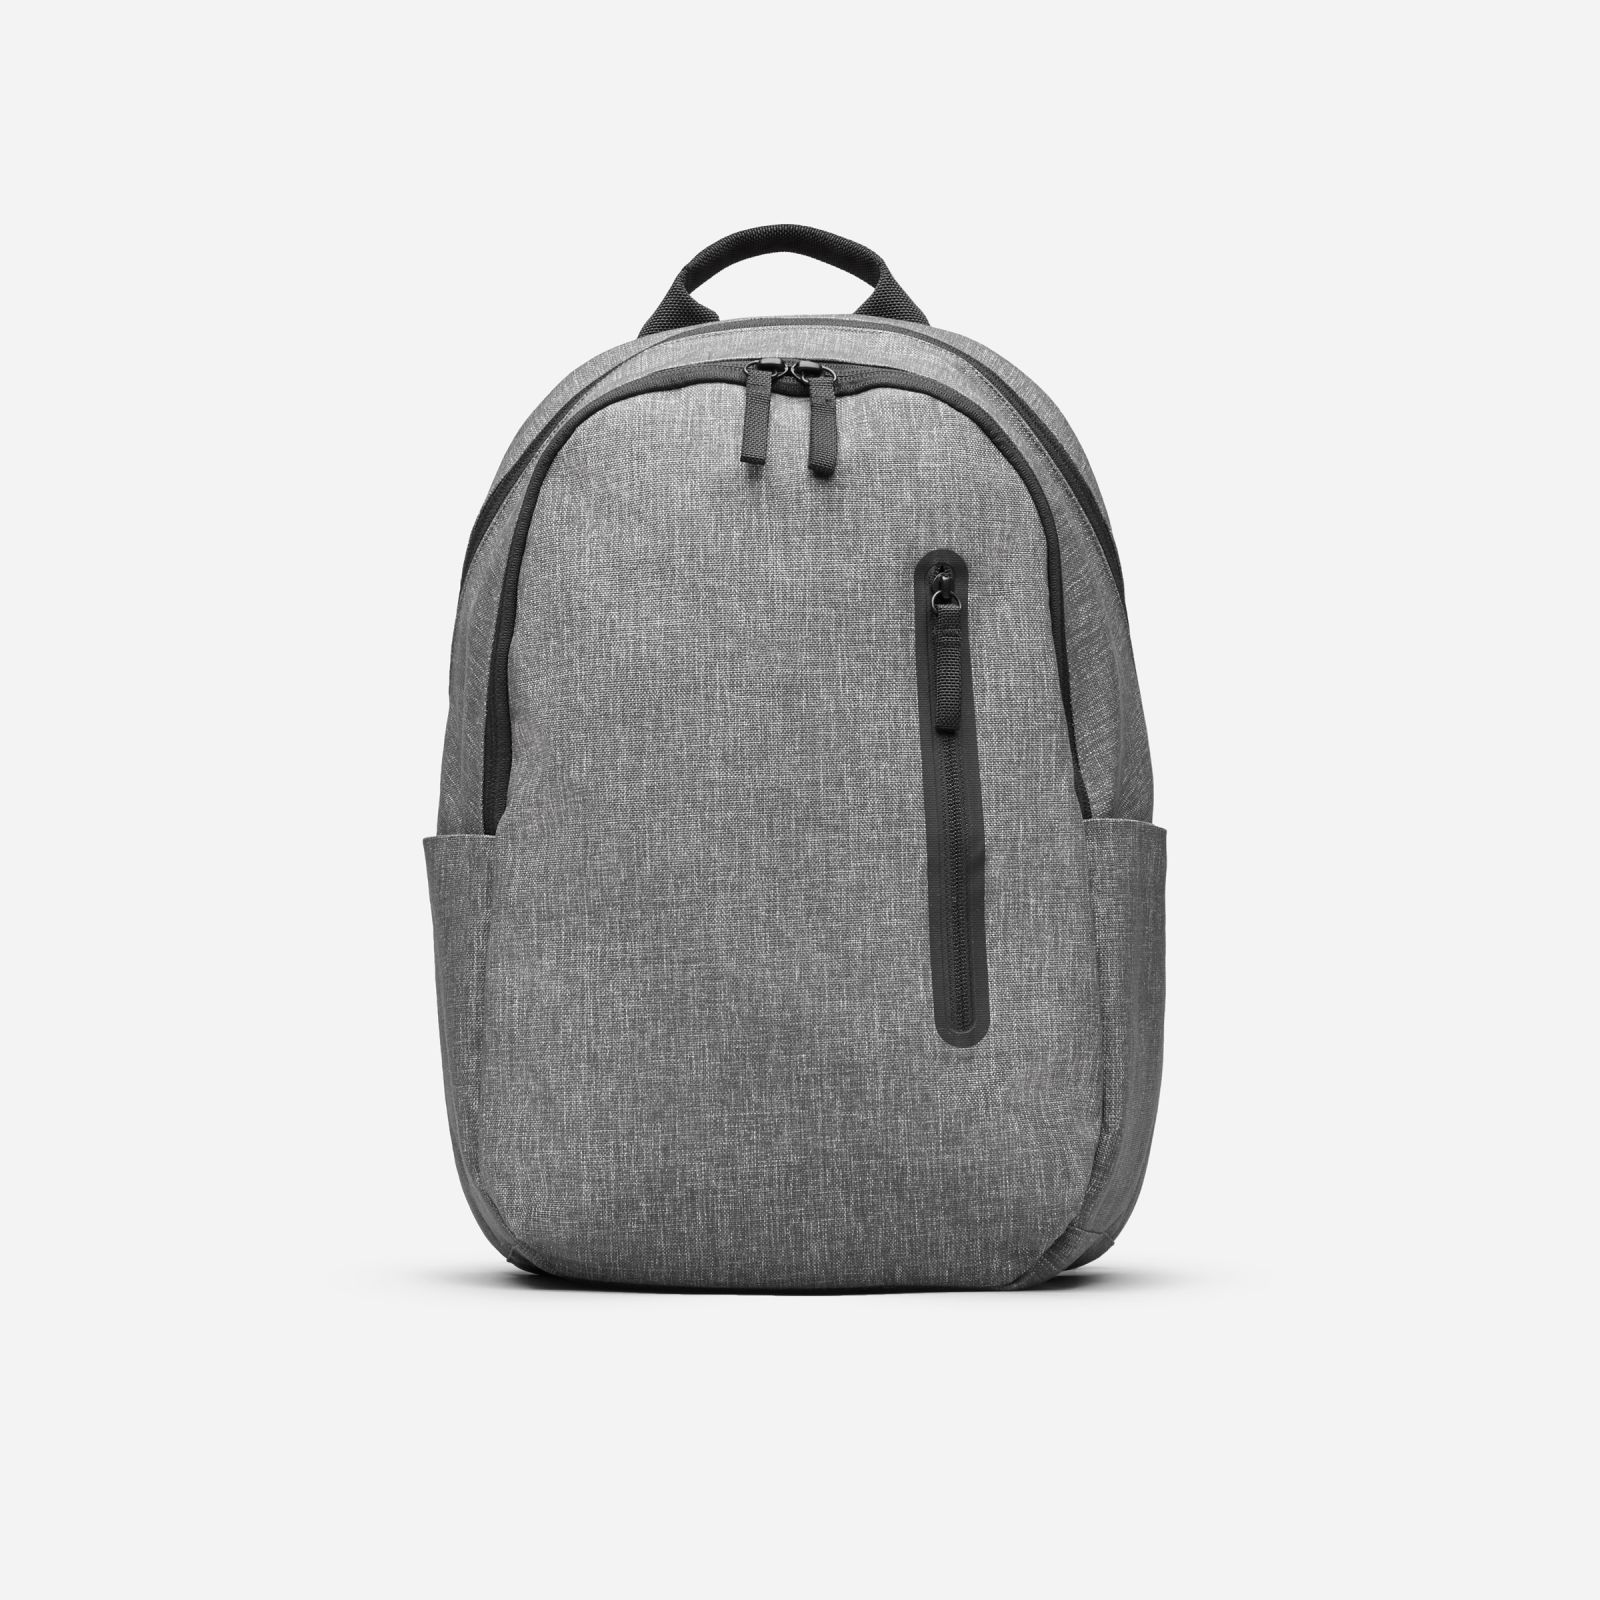 cb26eaebe354ef 10 Best Women's Backpacks for Work that are Sophisticated and Smart ...